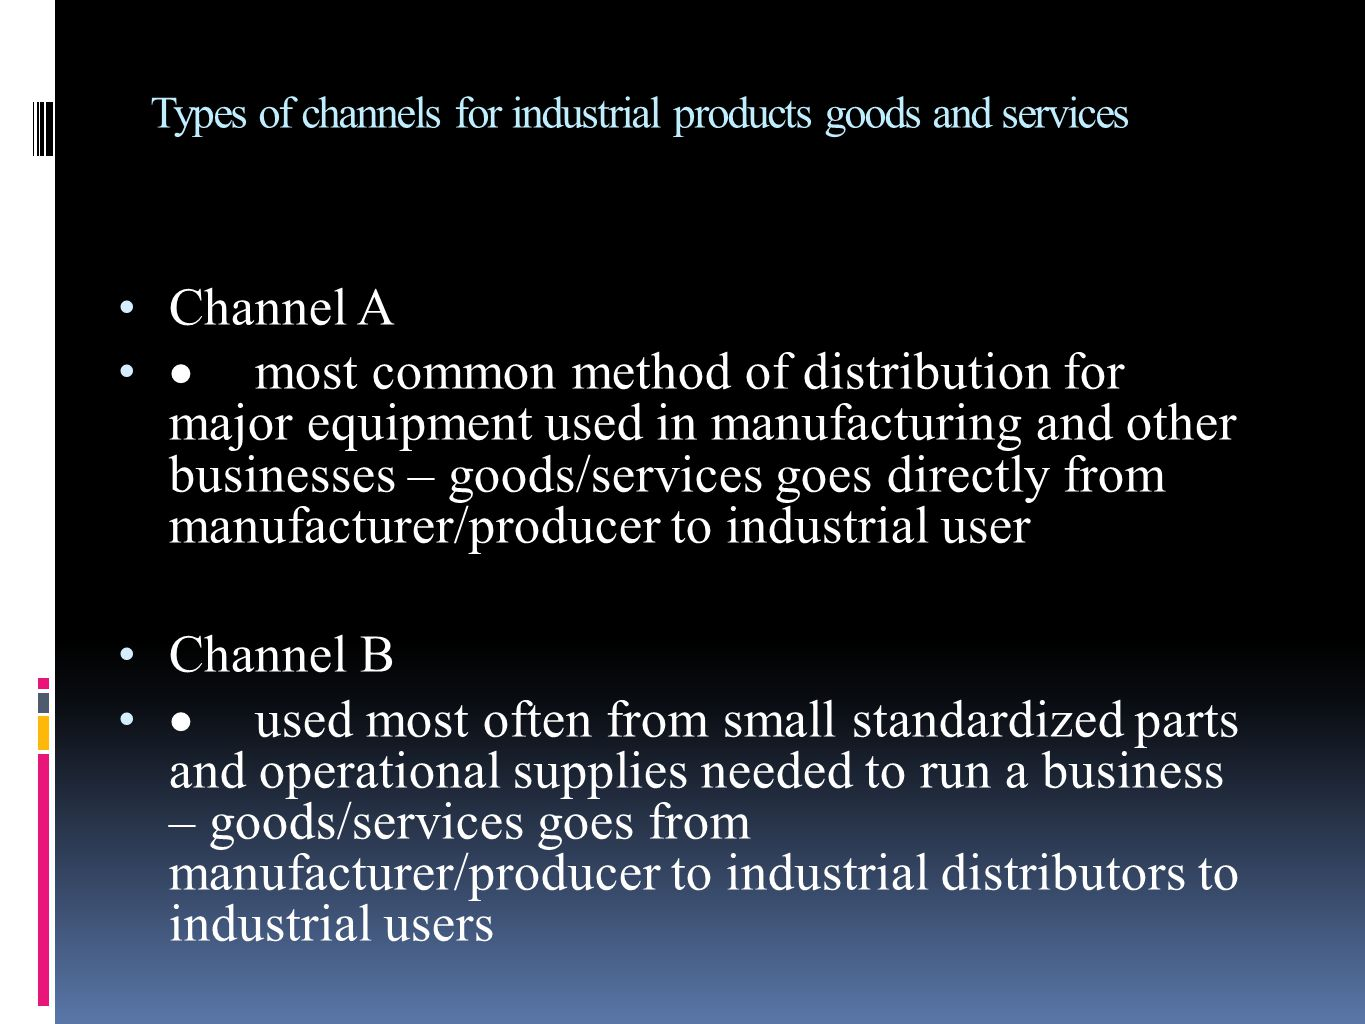 Types of channels for industrial products goods and services